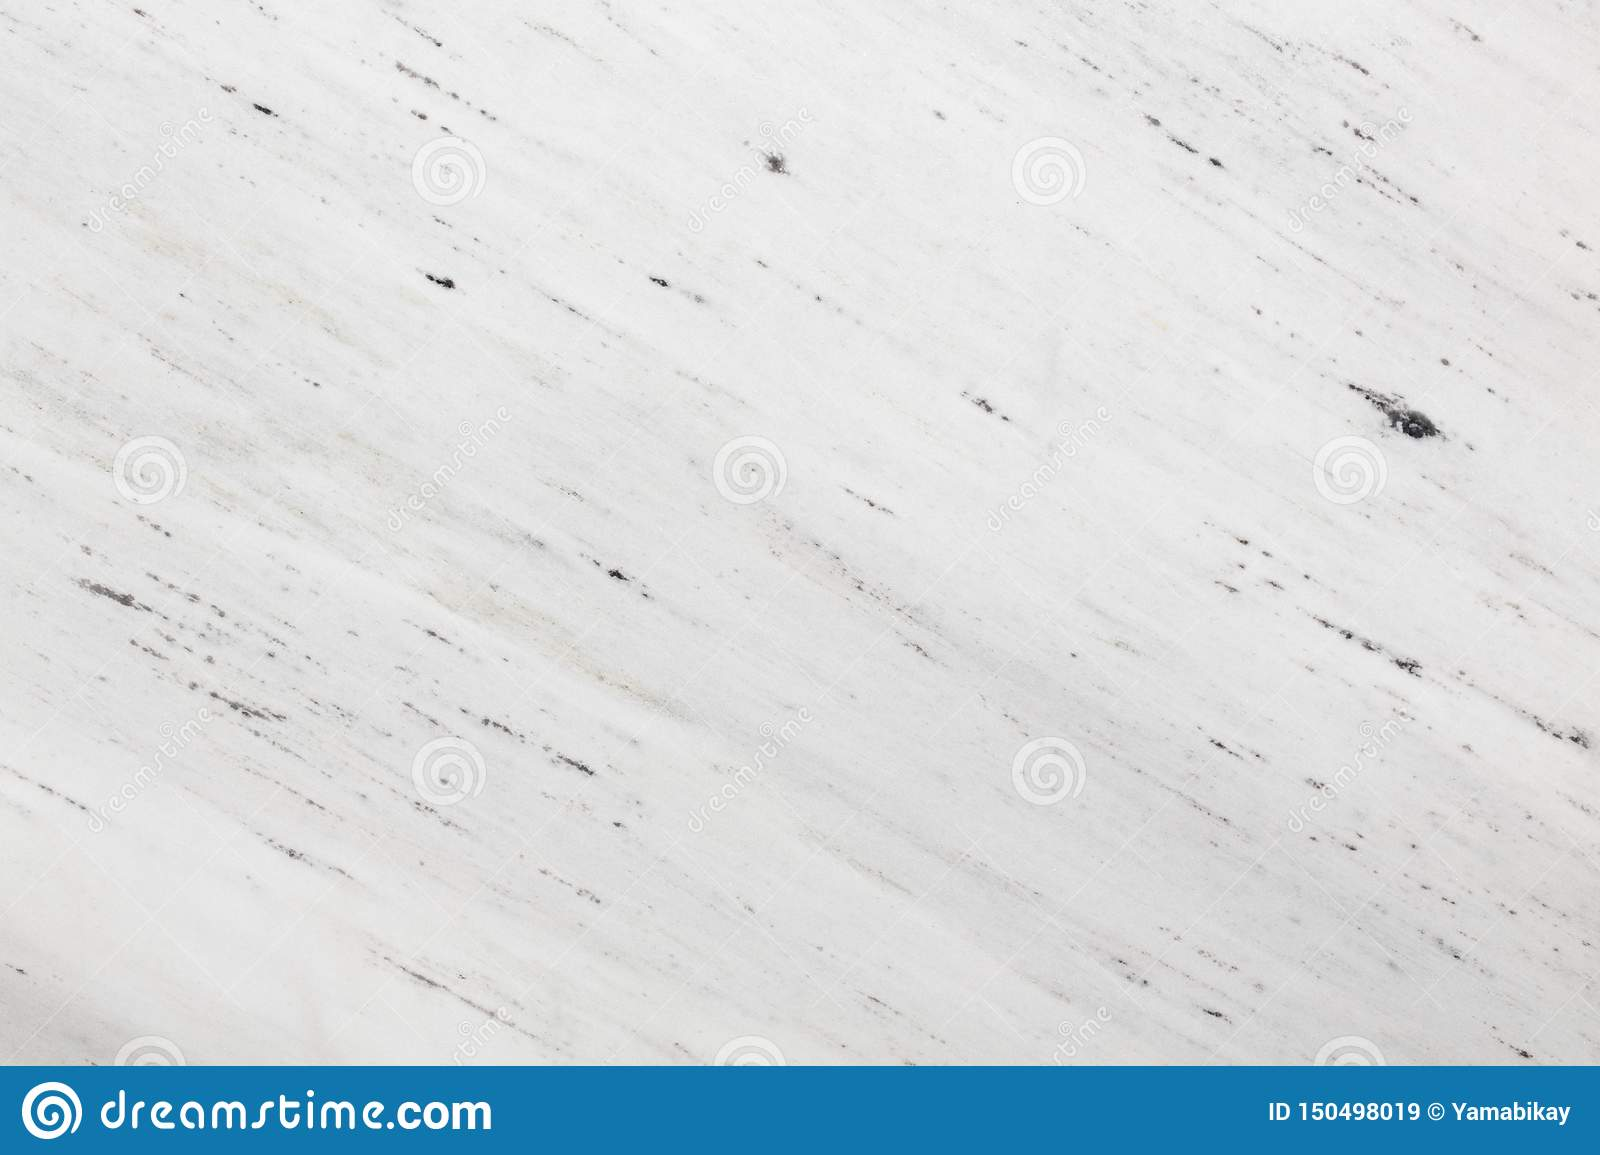 Marble texture background, raw solid surface marble for design.